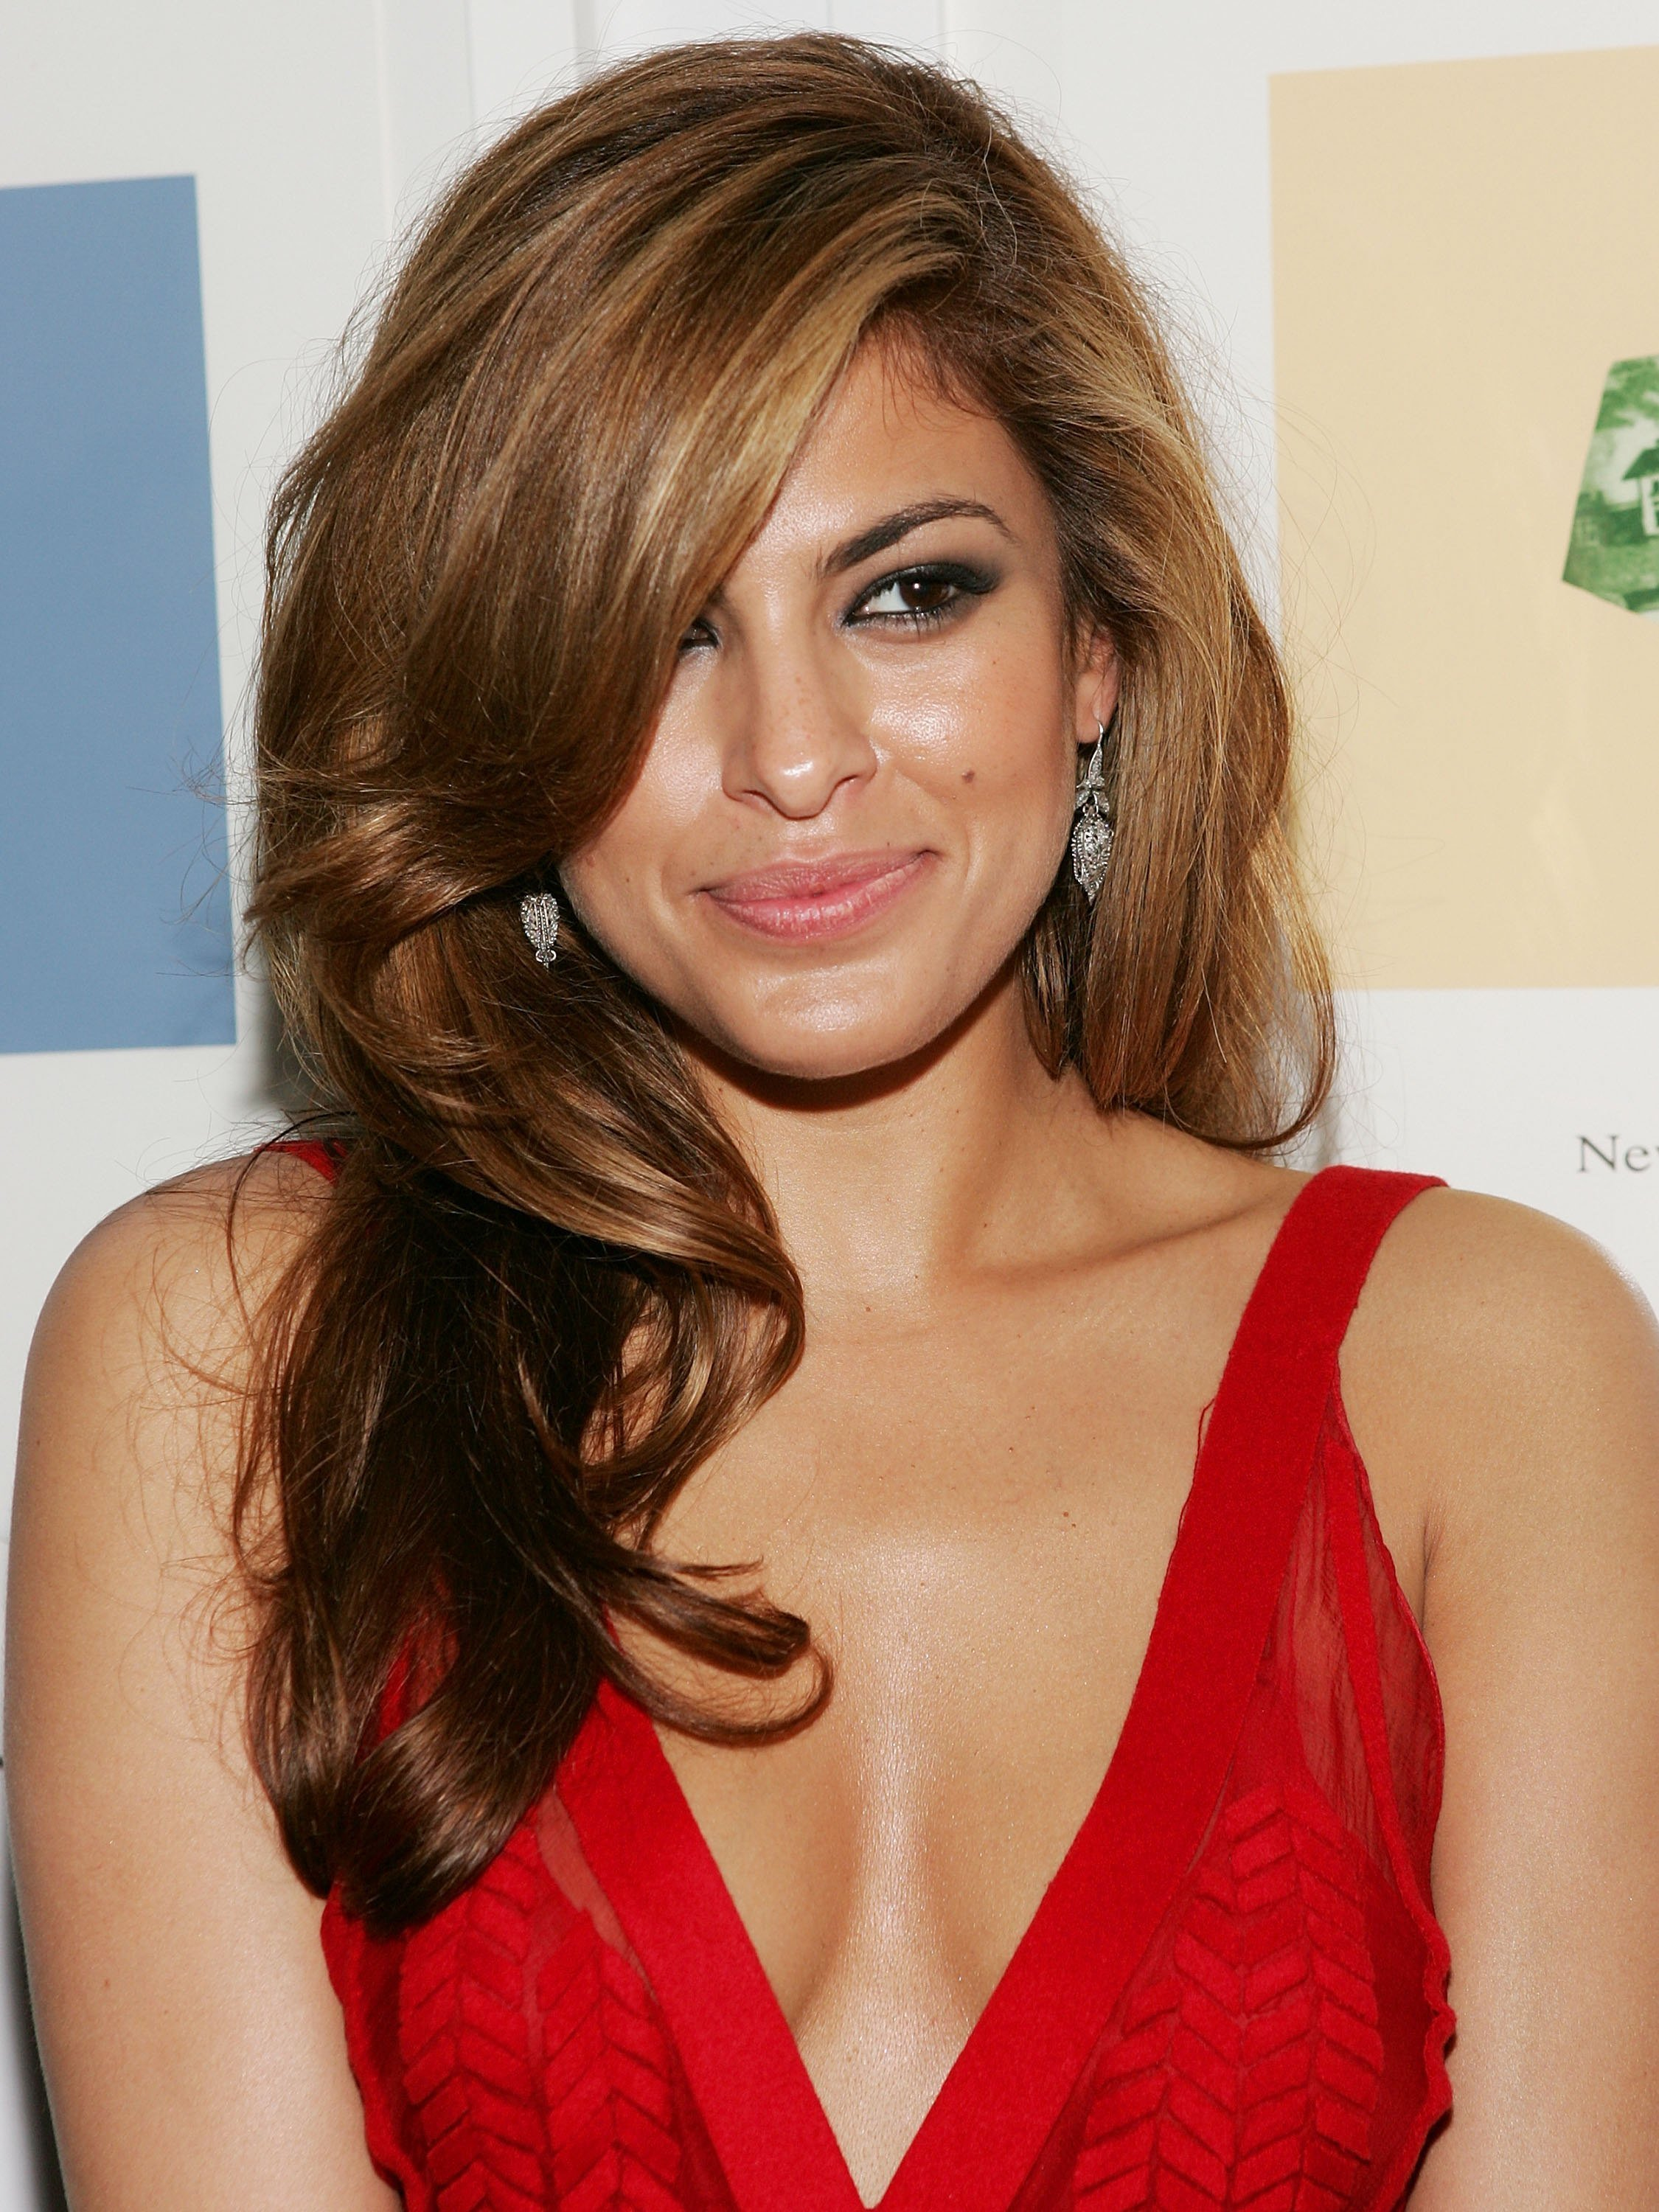 The Best Eva Mendes Photo 75 Of 1347 Pics Wallpaper Photo 56782 Pictures